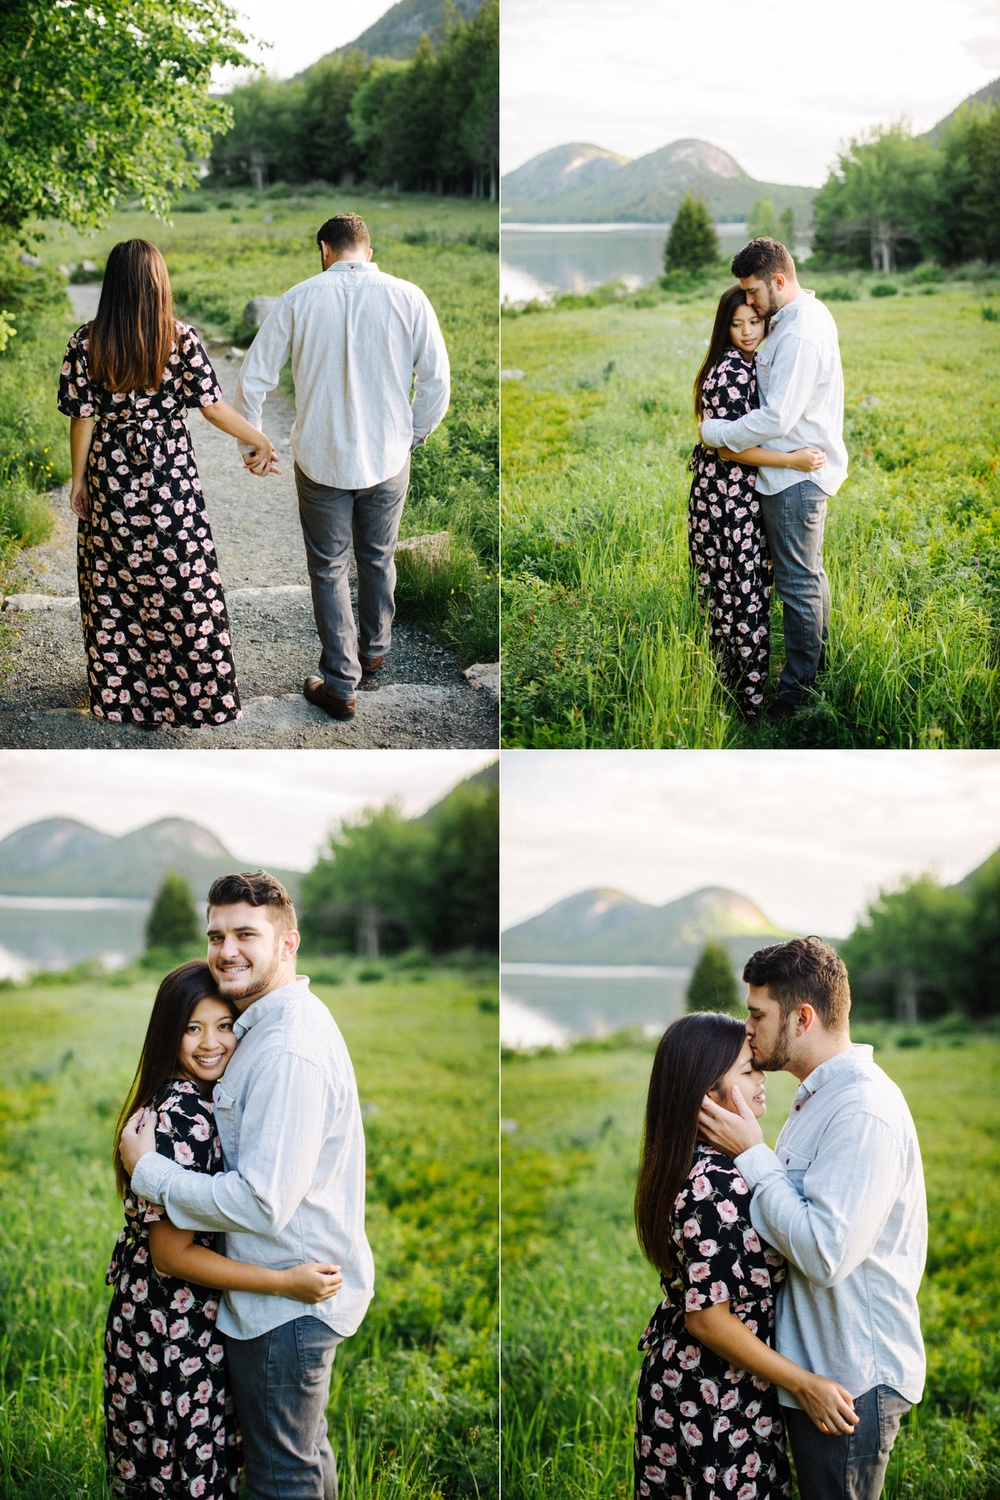 jake and jill acacdia national park engagement session cadillac mountain engagement session jordan pond engagement session maine engagement session jake and katie_0019